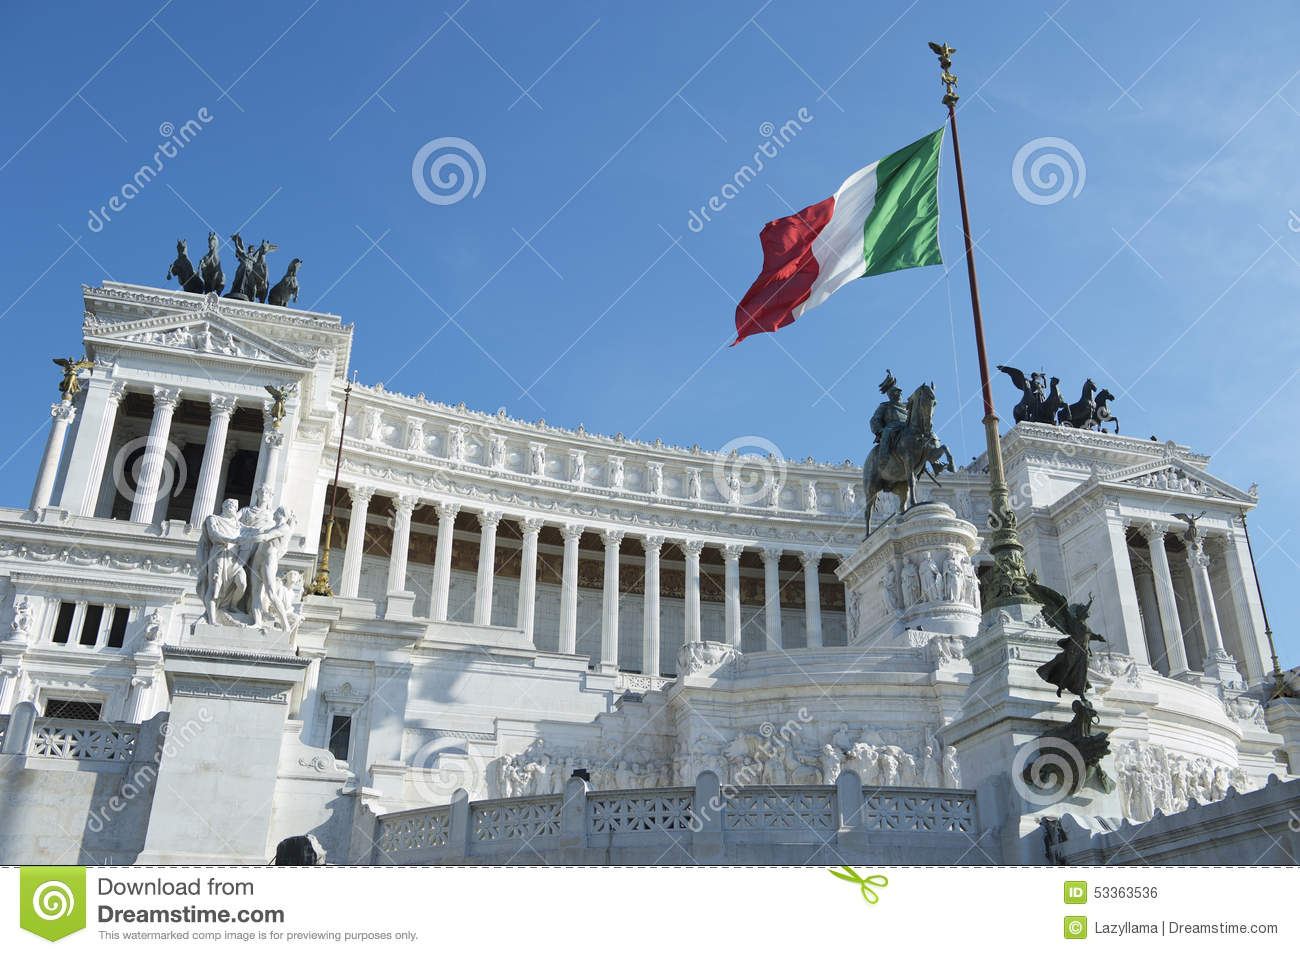 Modern Architecture Rome rome italy modernist architecture of trajan's forum stock photo